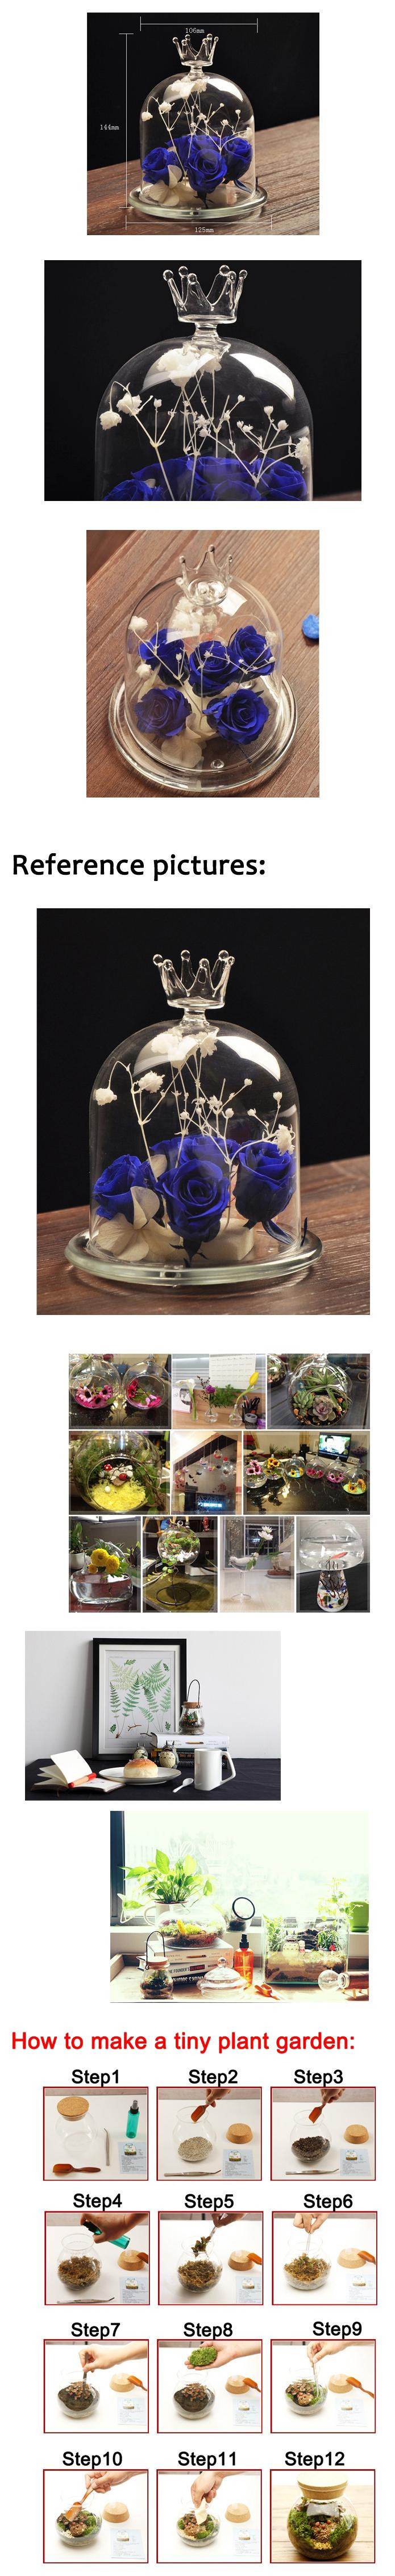 vision glass vases wholesale of 5 6 inches transparent flower plant vase crown glass cloche vases for import duties taxes and charges